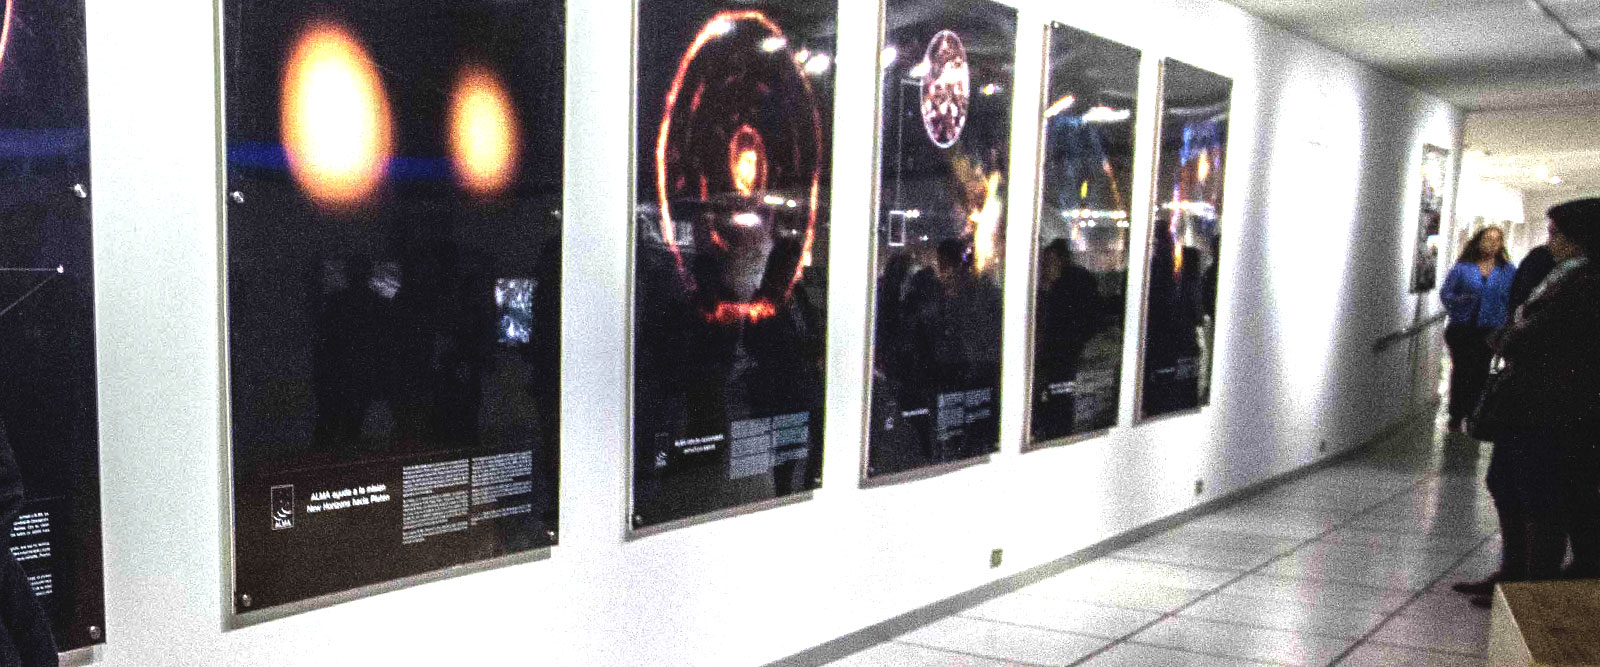 Guided tours with astronomers during last weekend of the ALMA exhibit